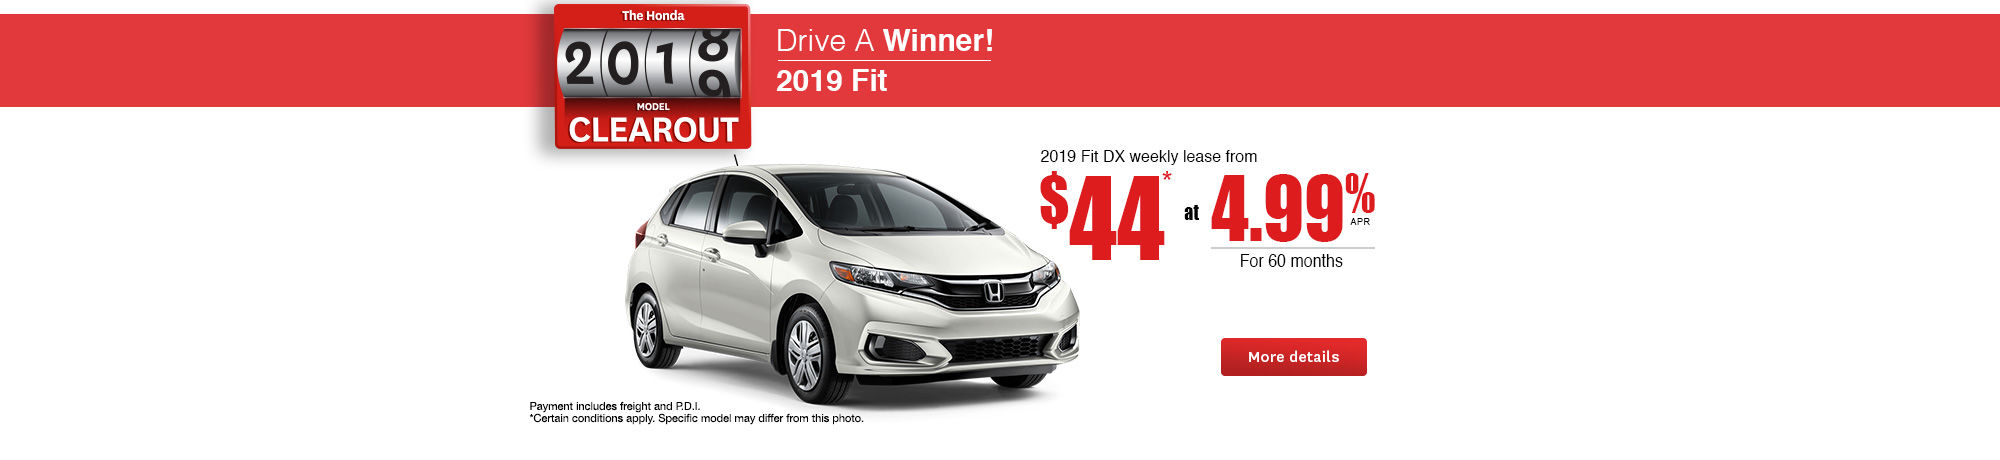 Lease the 2018 Honda Accord Fit!